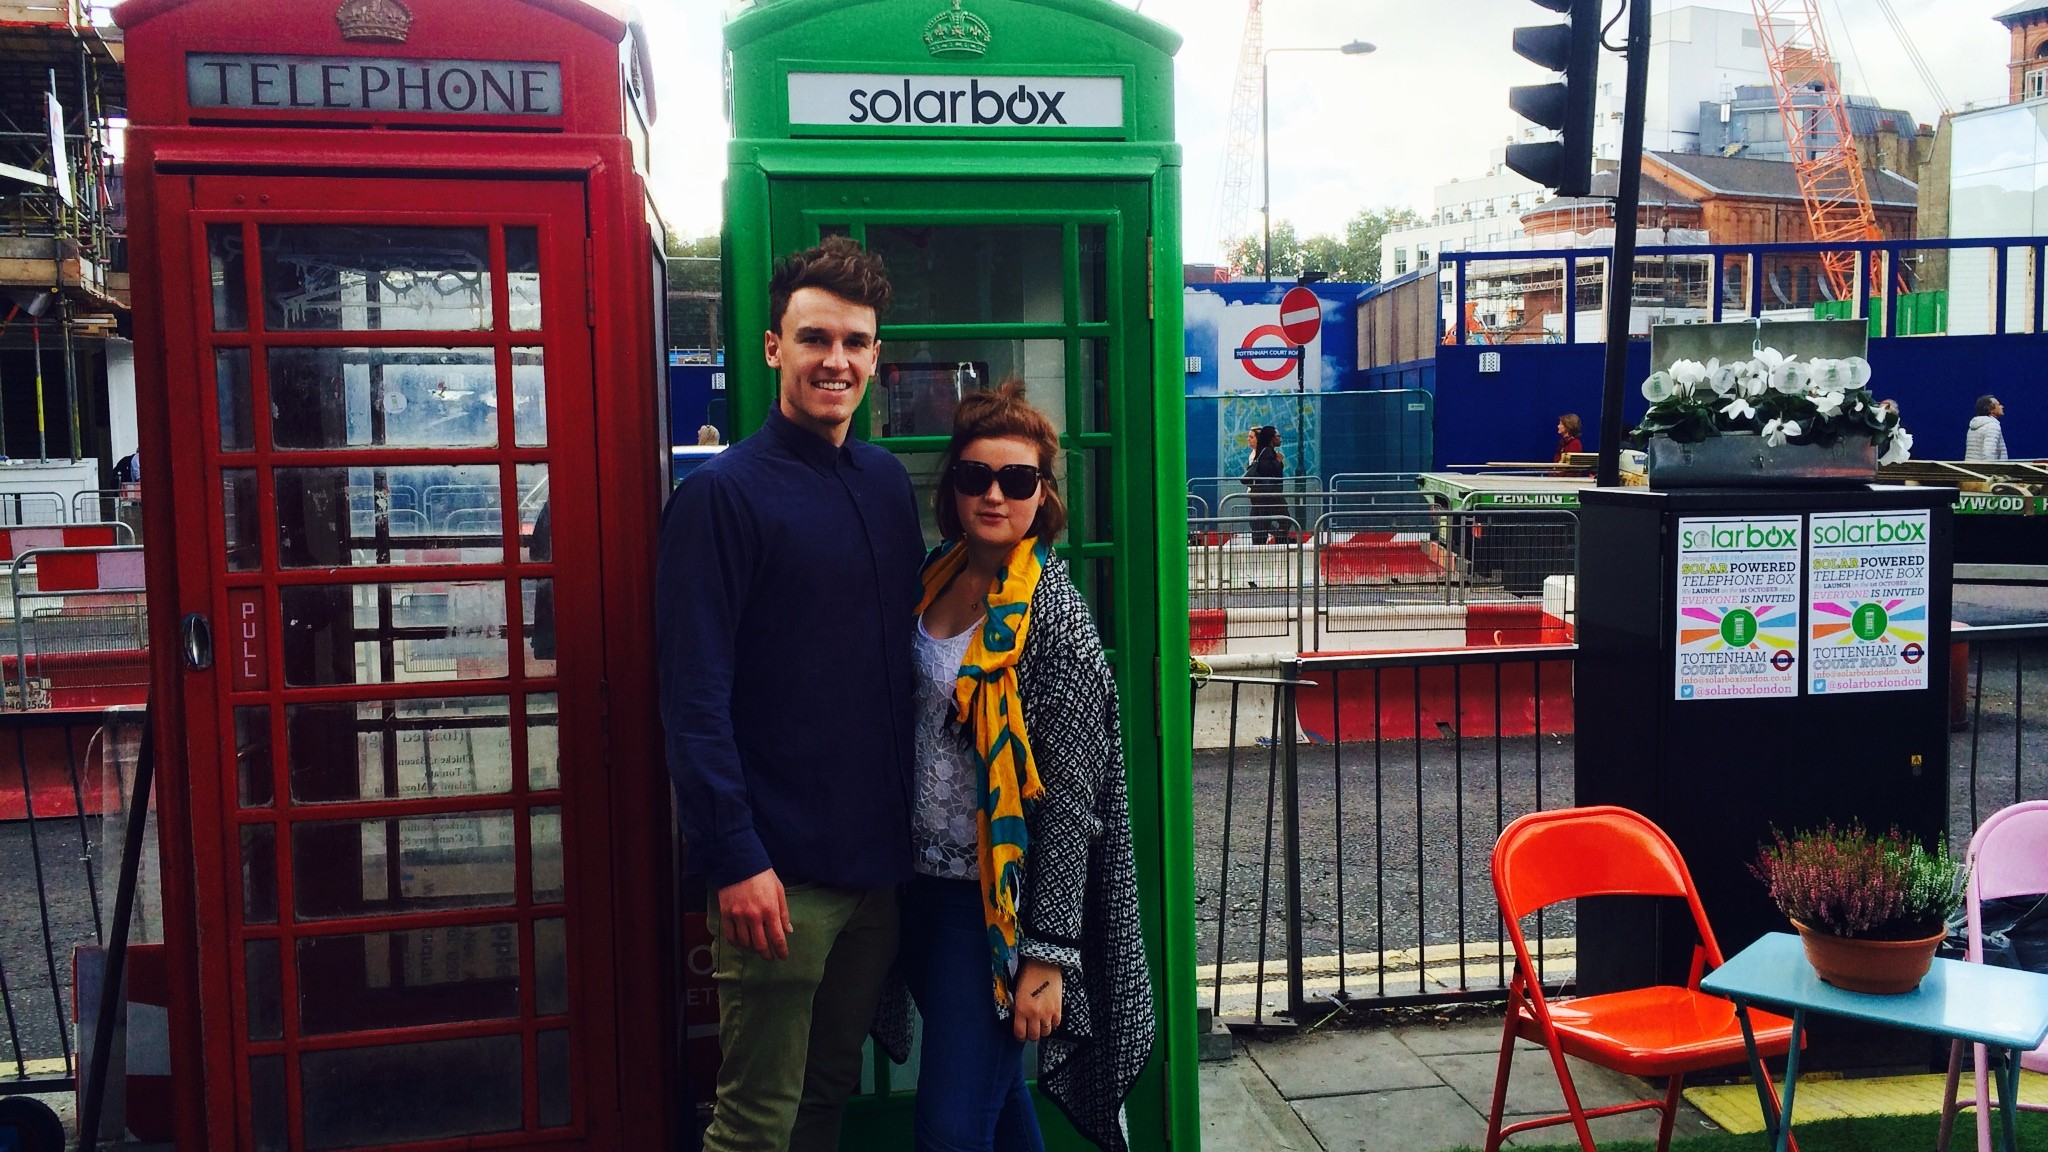 This Solar-Powered Public Phone Box Charges Your Smartphone for Free